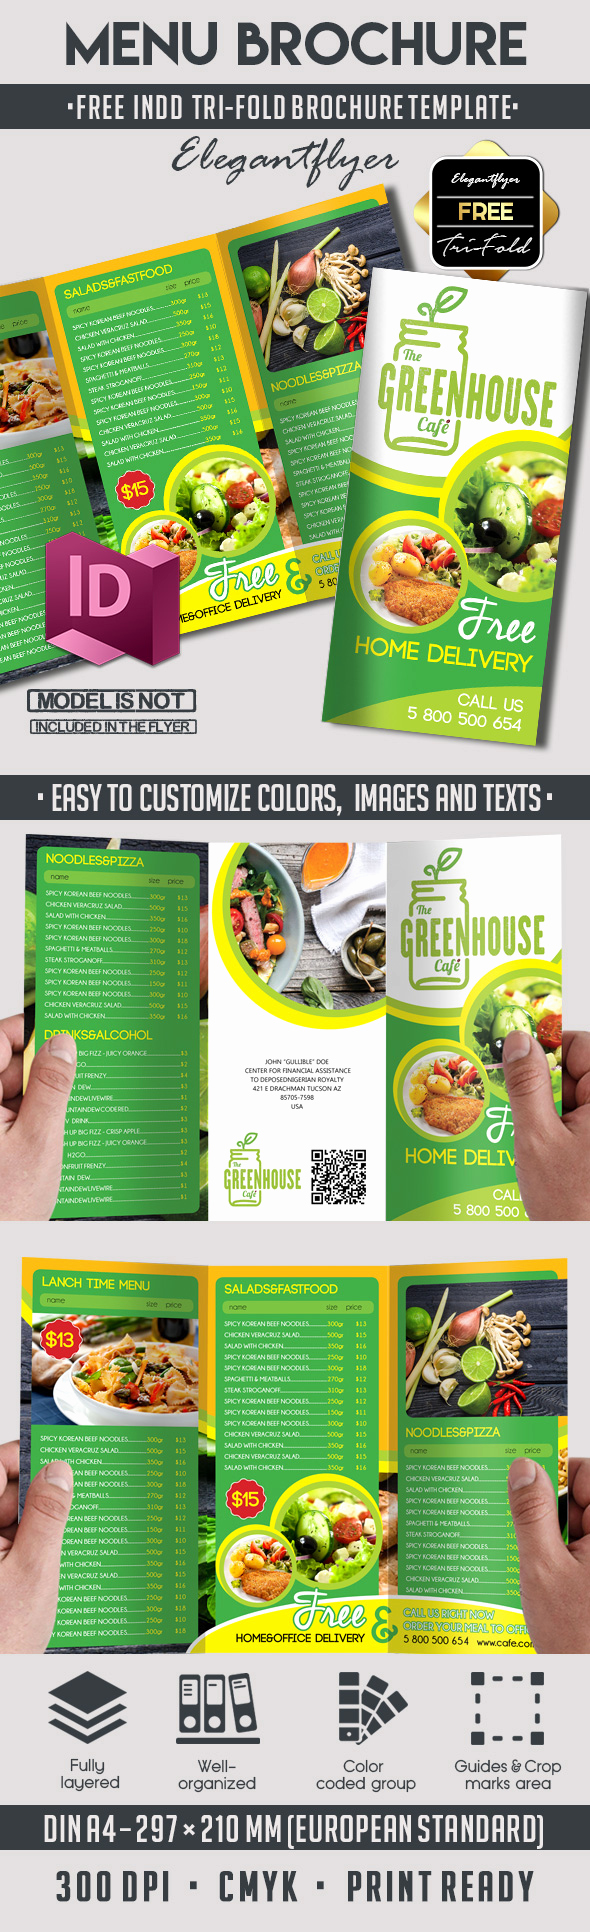 Free Indesign Brochure Templates Fresh 5 Powerful Free Adobe Indesign Brochures Templates – by